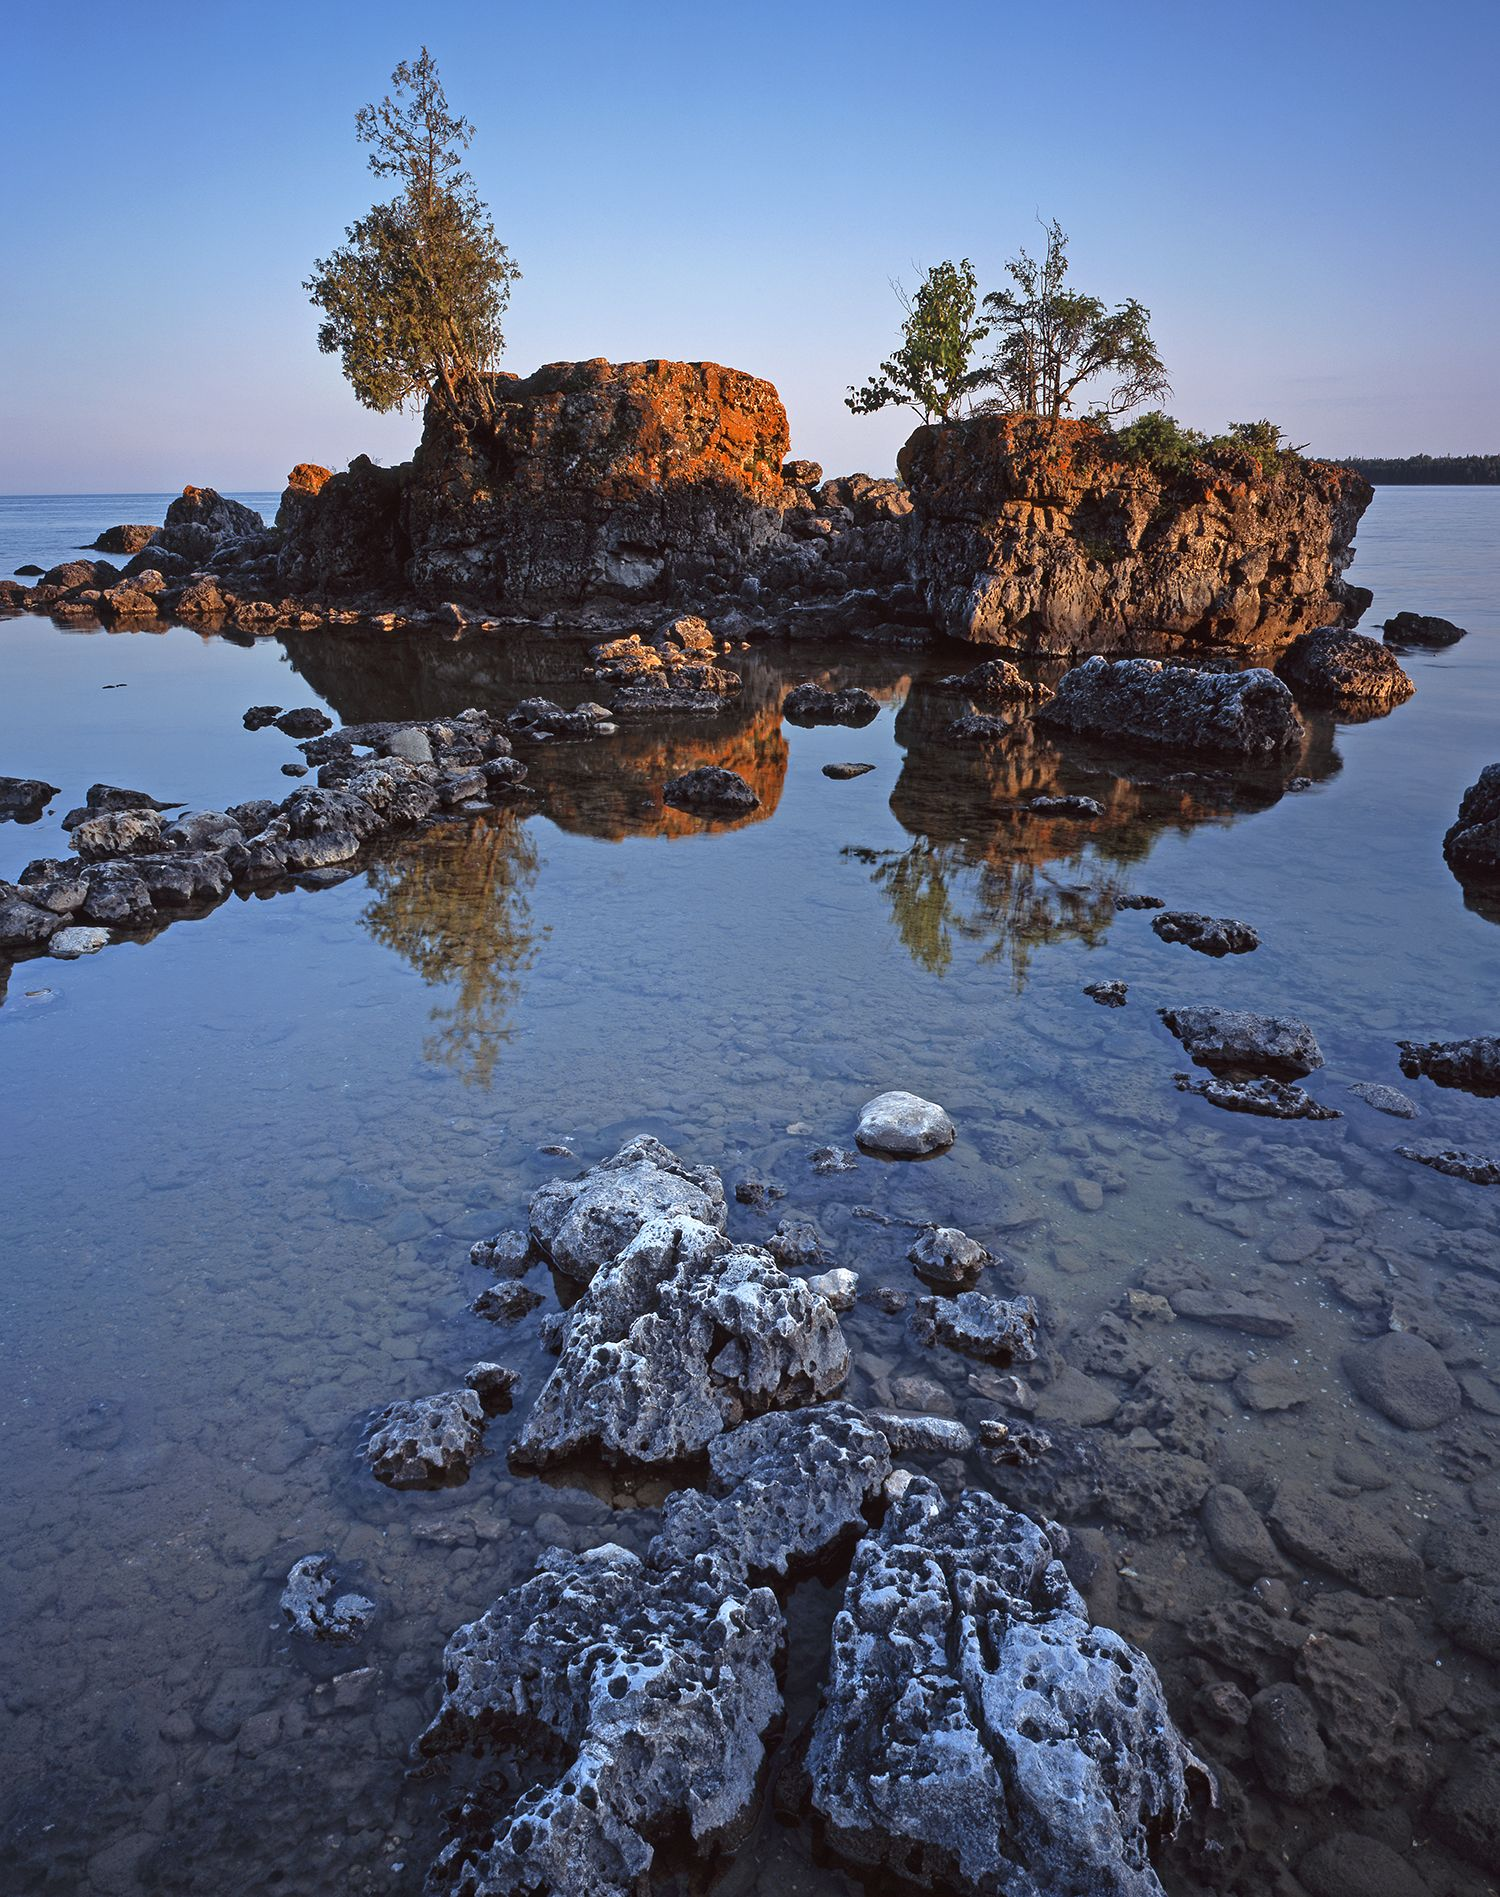 A rock formation on a calm shore.